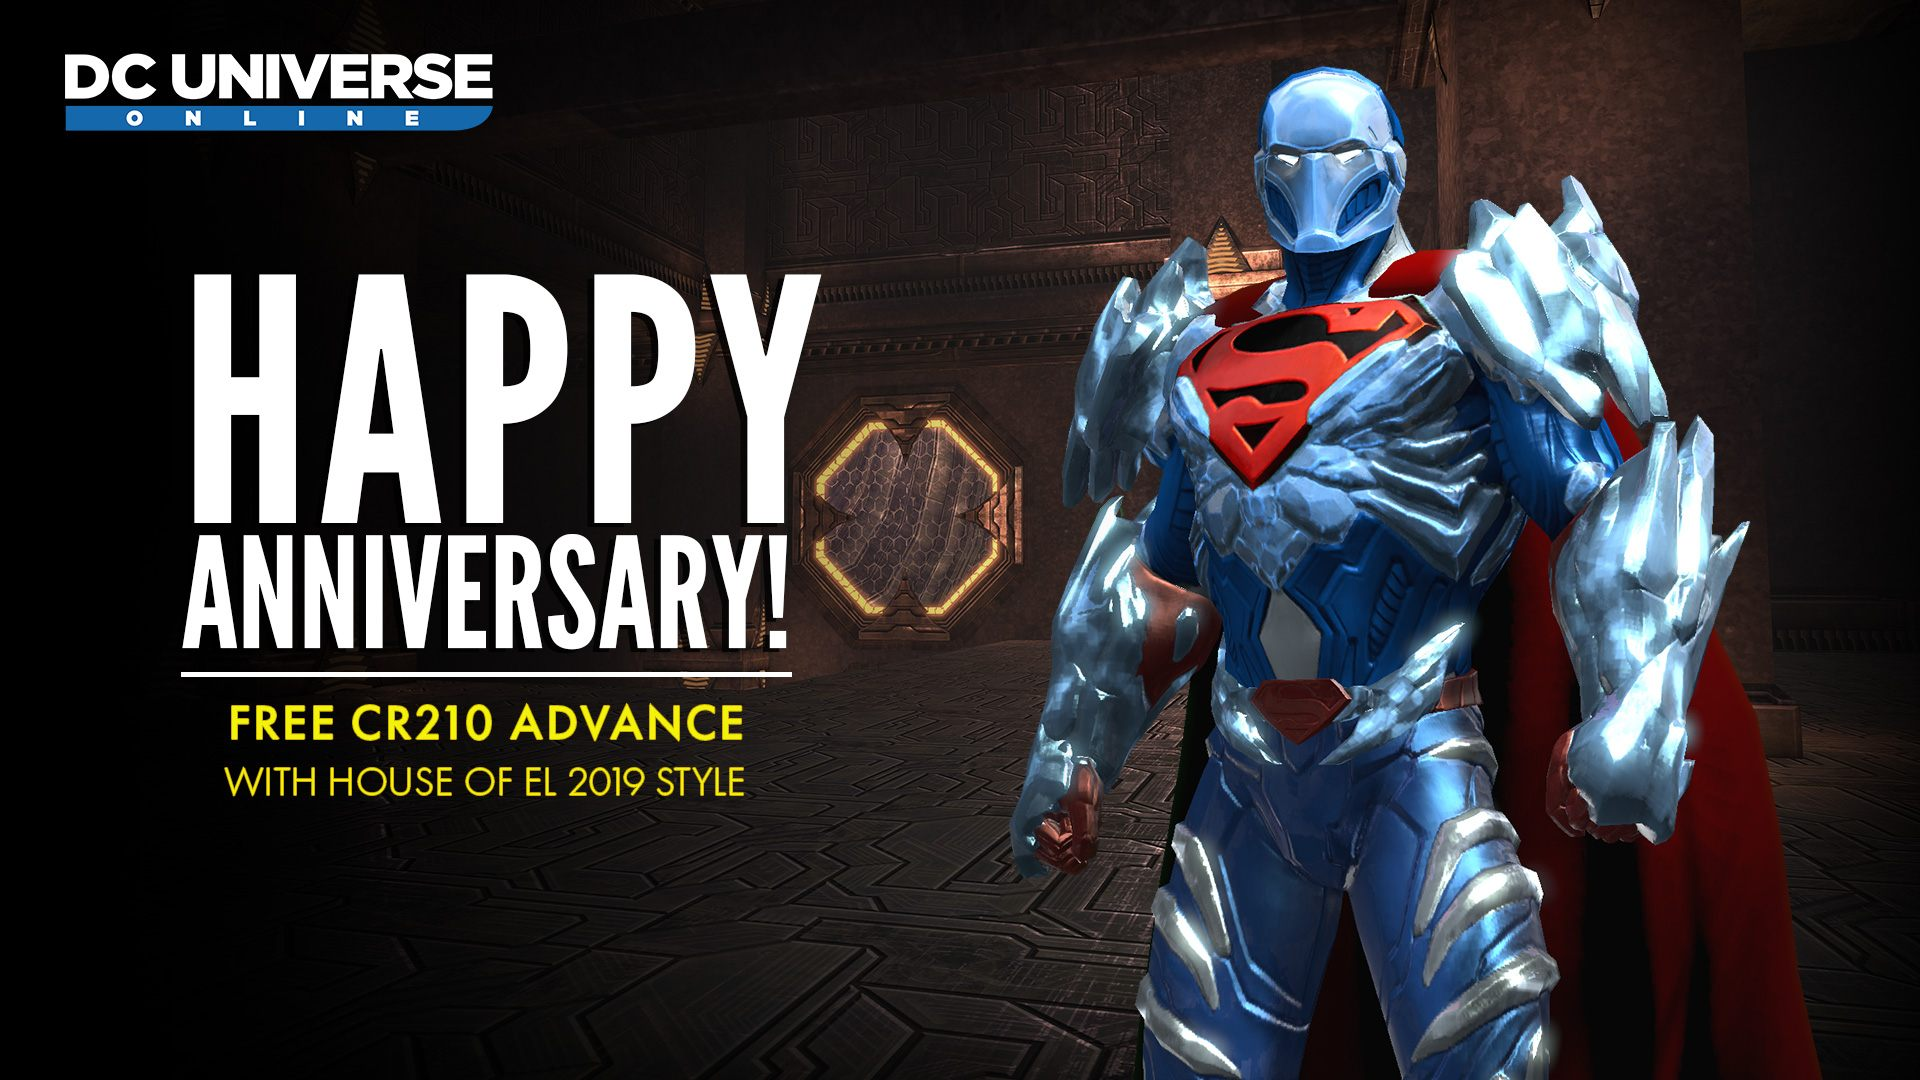 dc universe online free gift cr210 character advance house of el